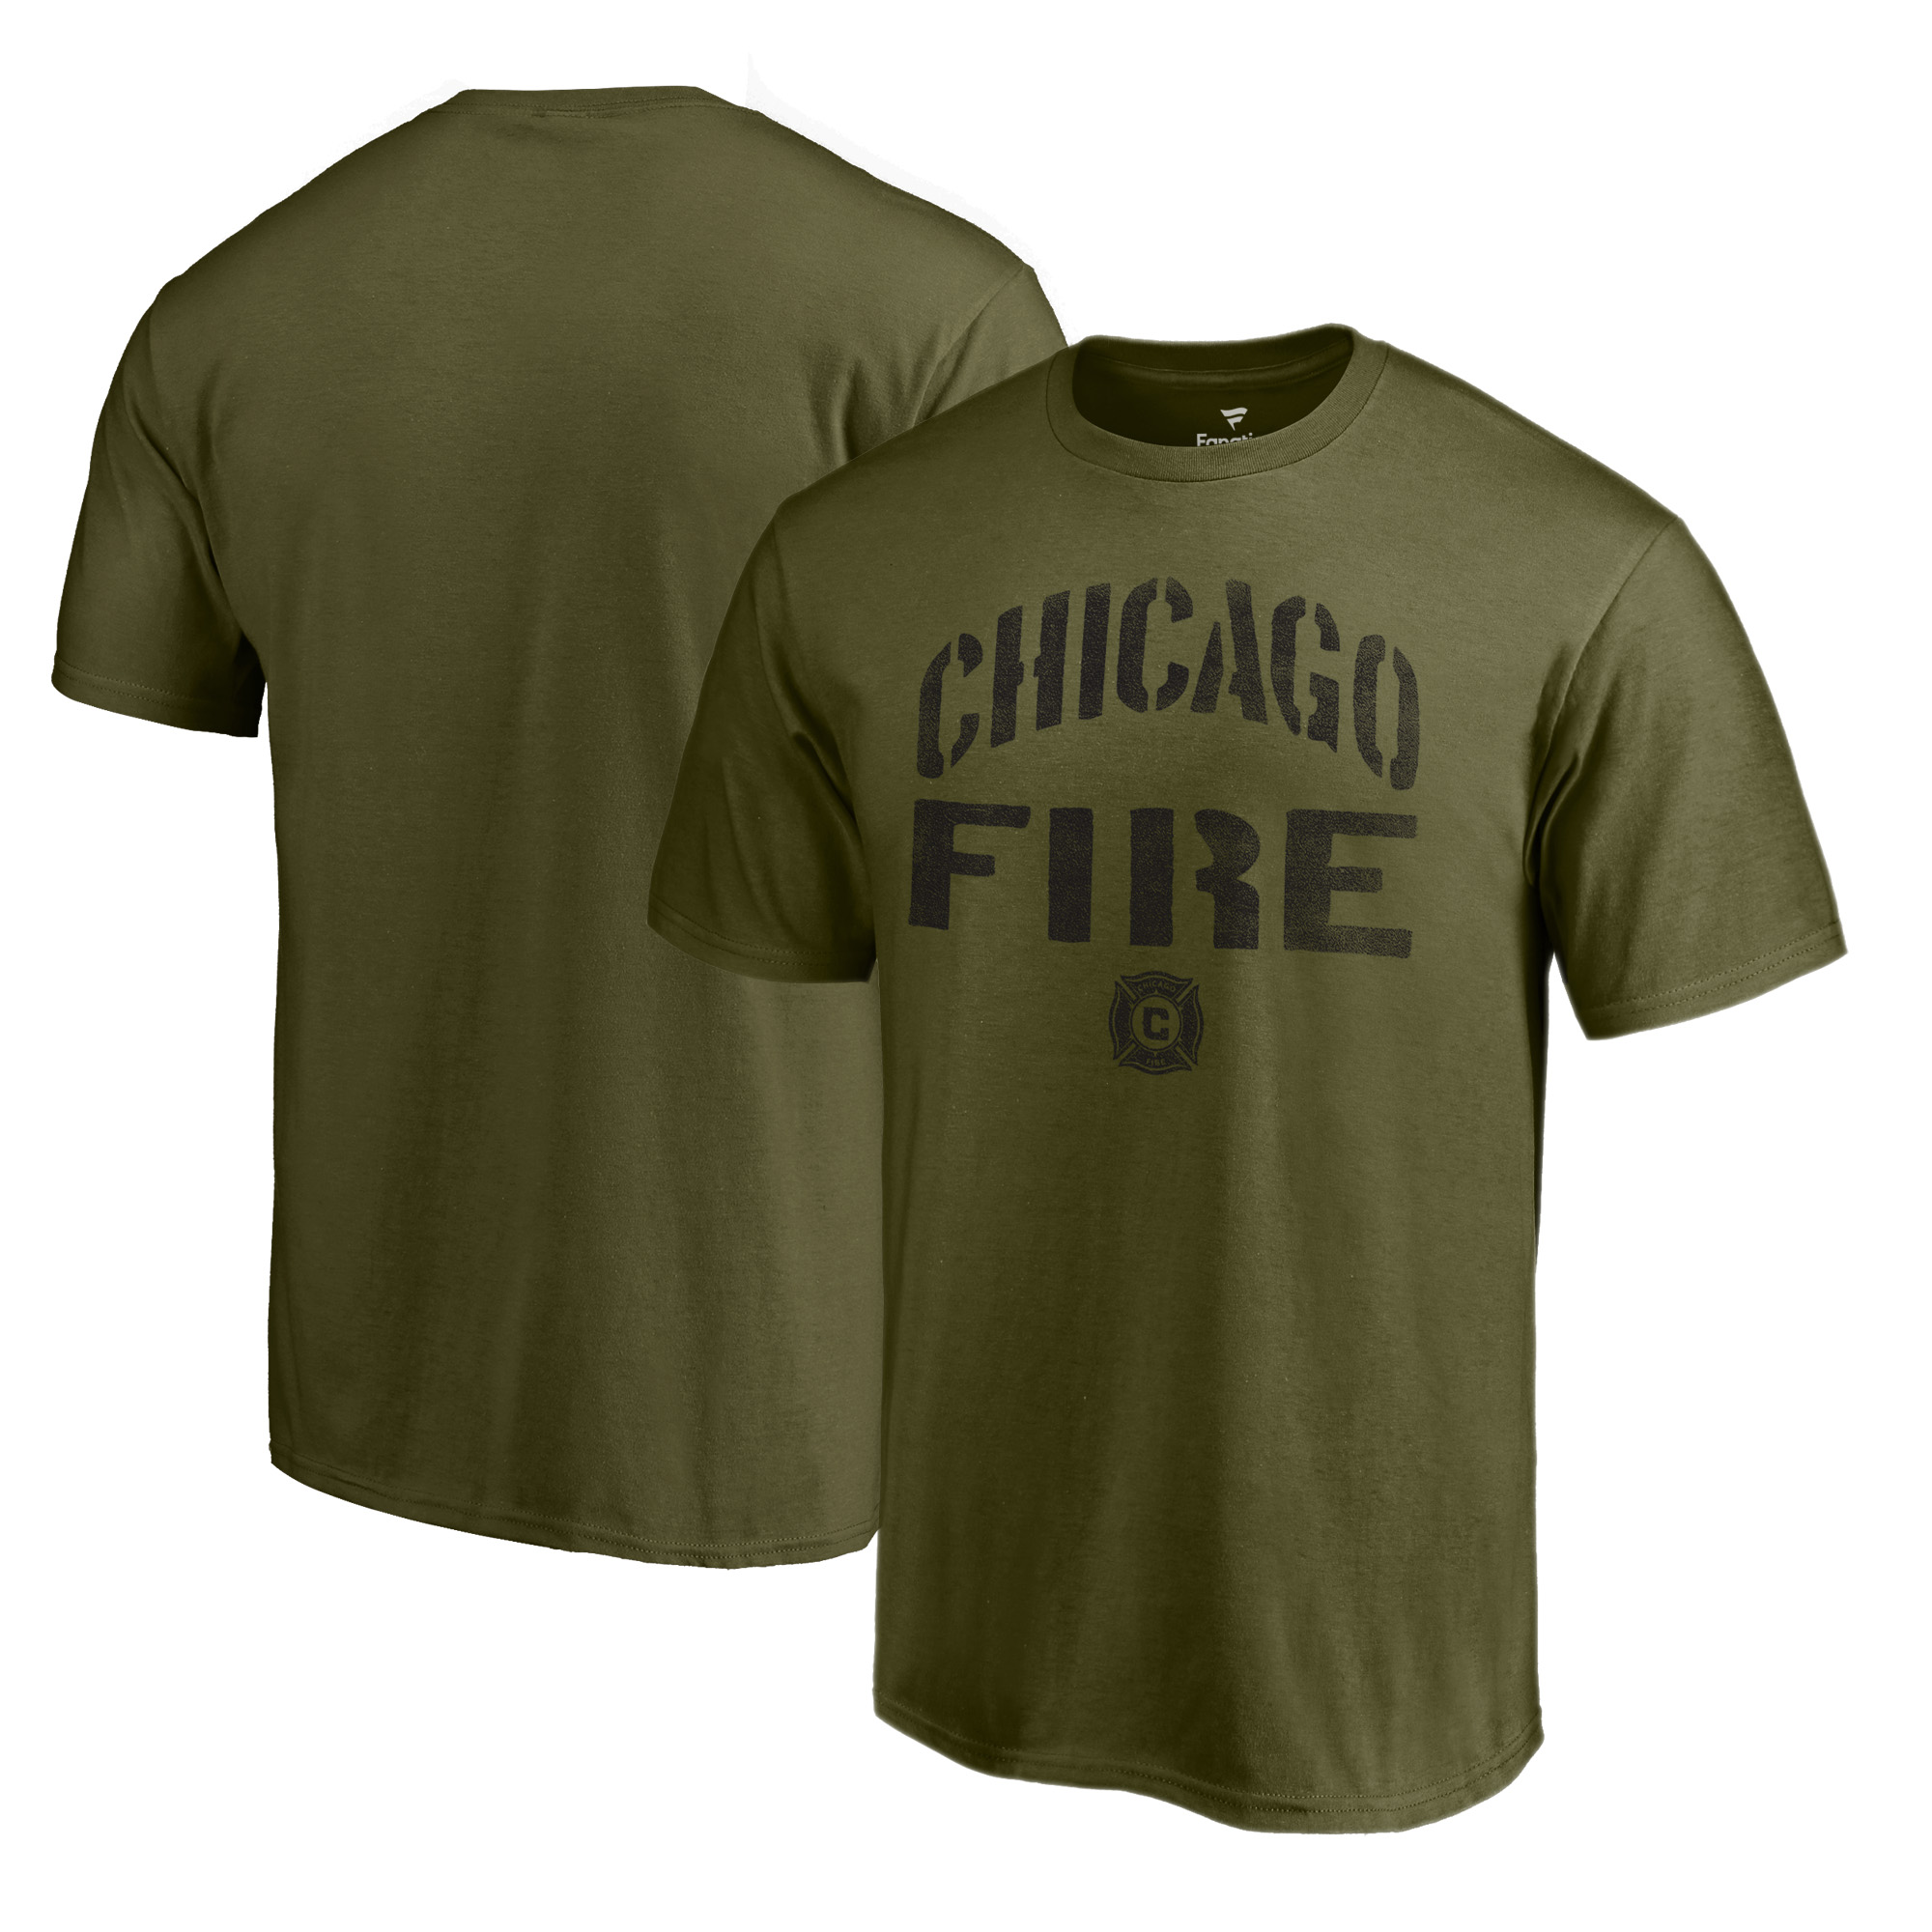 Chicago Fire Fanatics Branded Camo Collection Jungle T-Shirt - Green